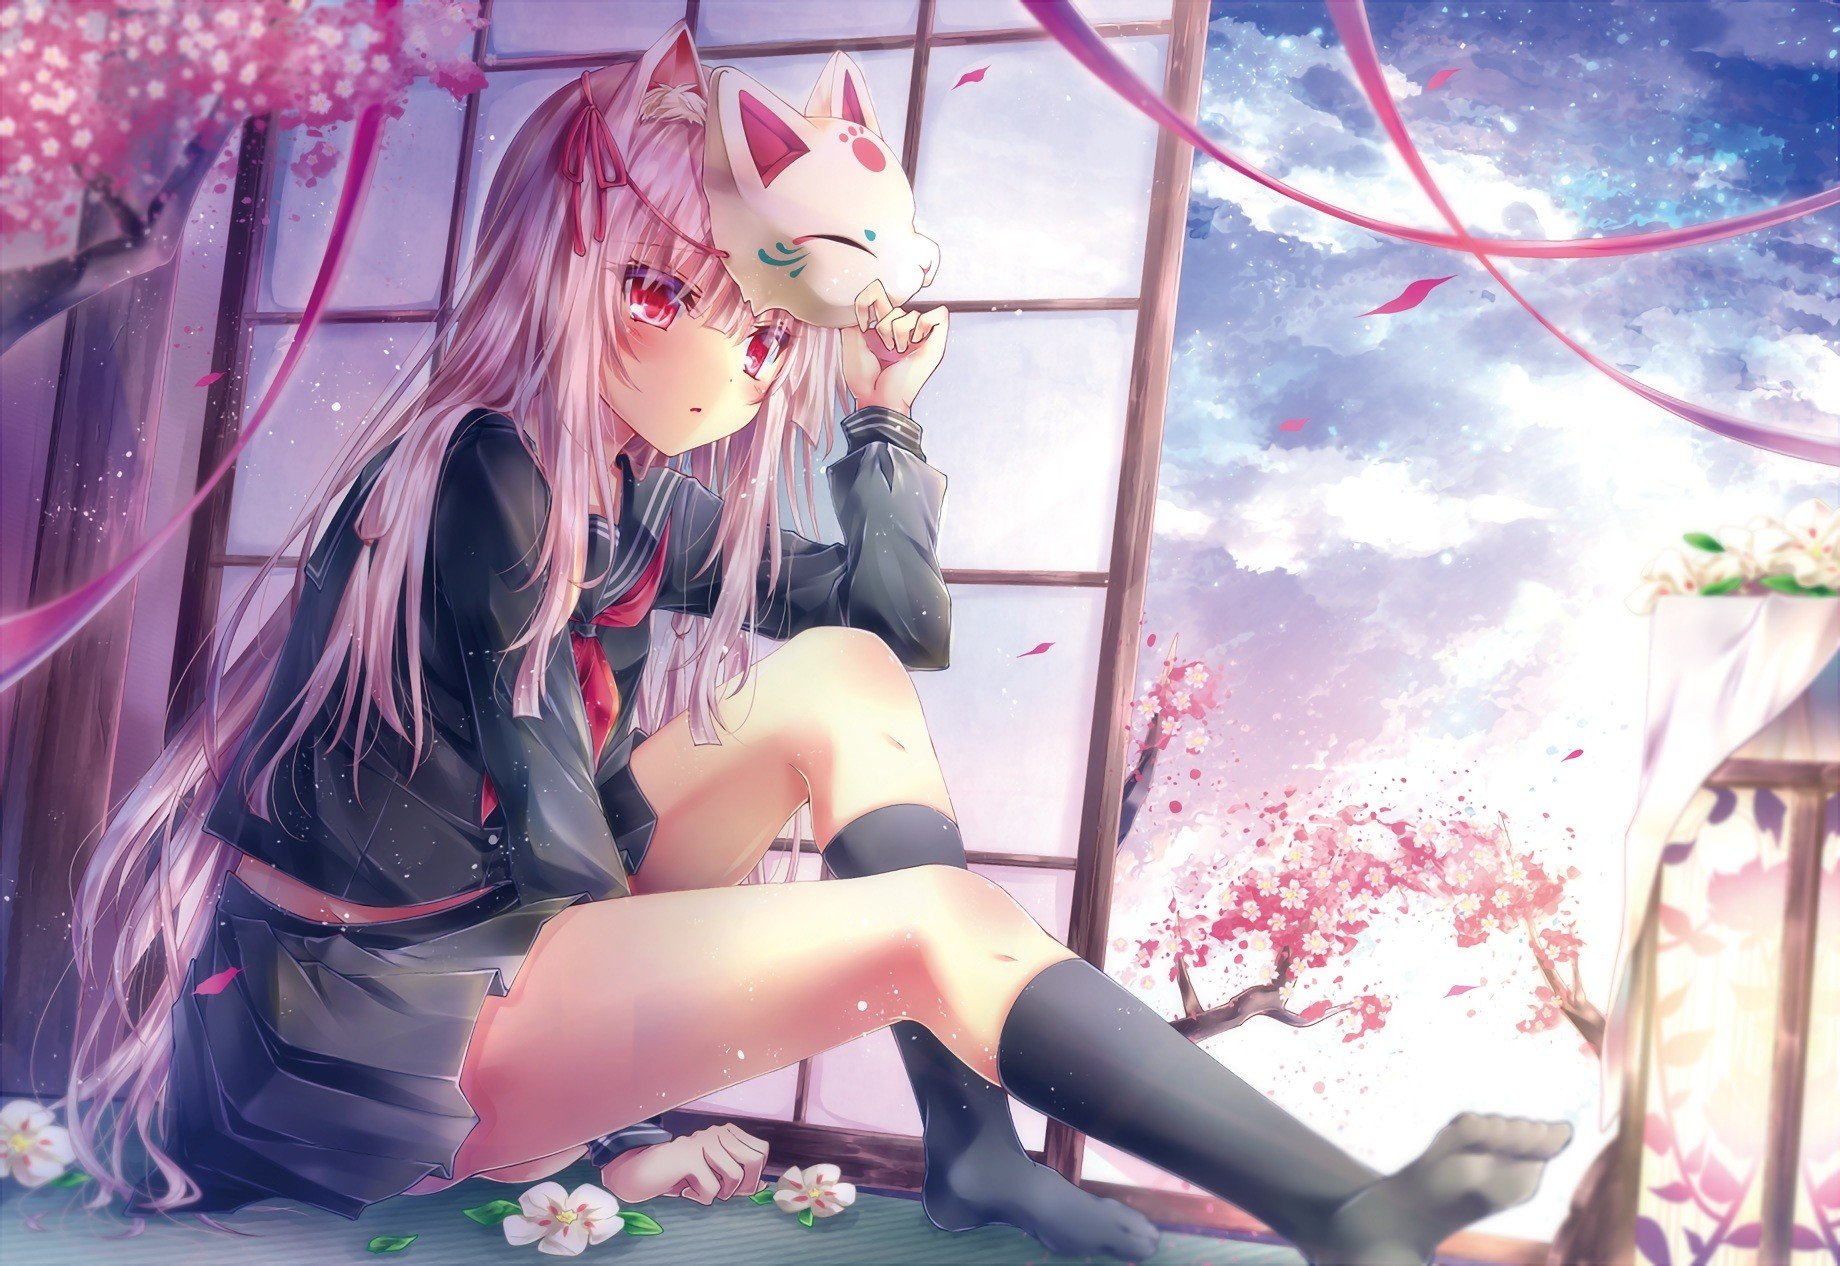 original characters, Animal ears, Cherry blossom, Flowers, Mask, Ribbon, School uniform, Knee highs, Sky Wallpaper